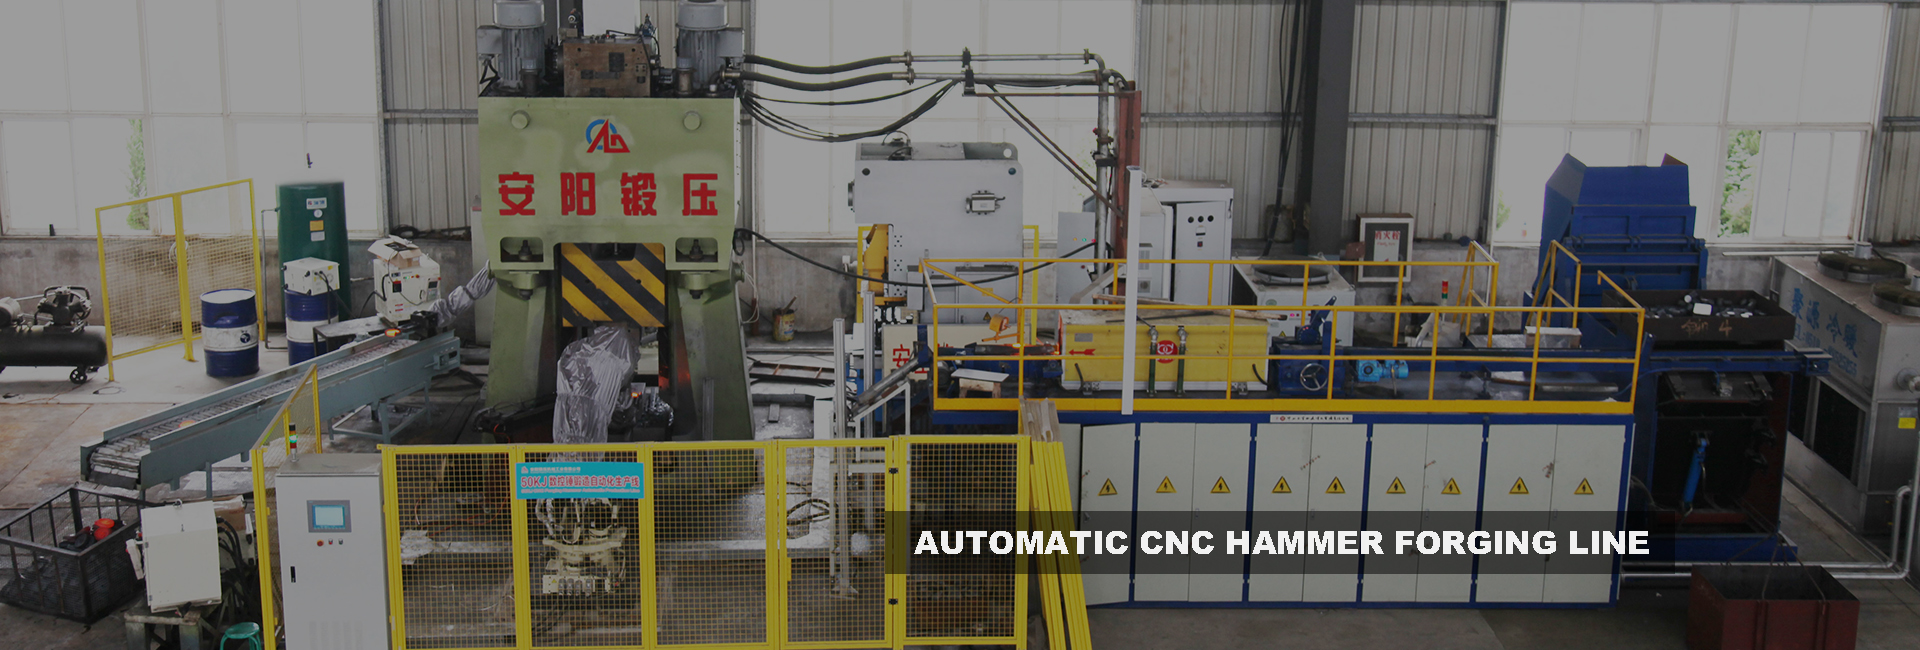 Manual or automatic forging 42